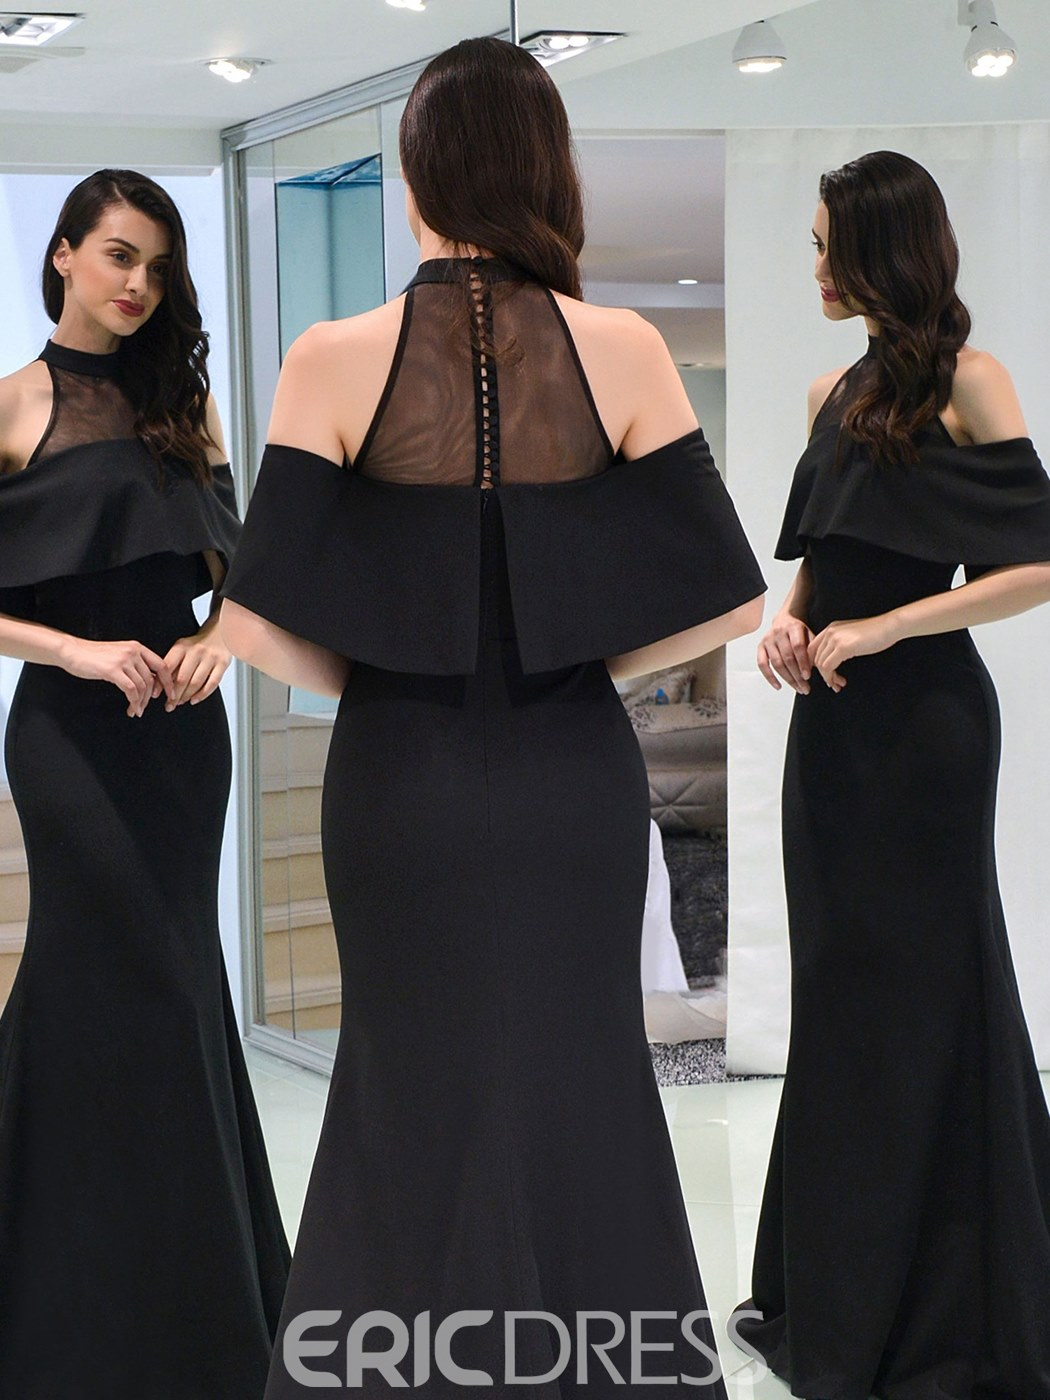 Ericdress Short Sleeve Scoop Neck Black Mermaid Evening Dress